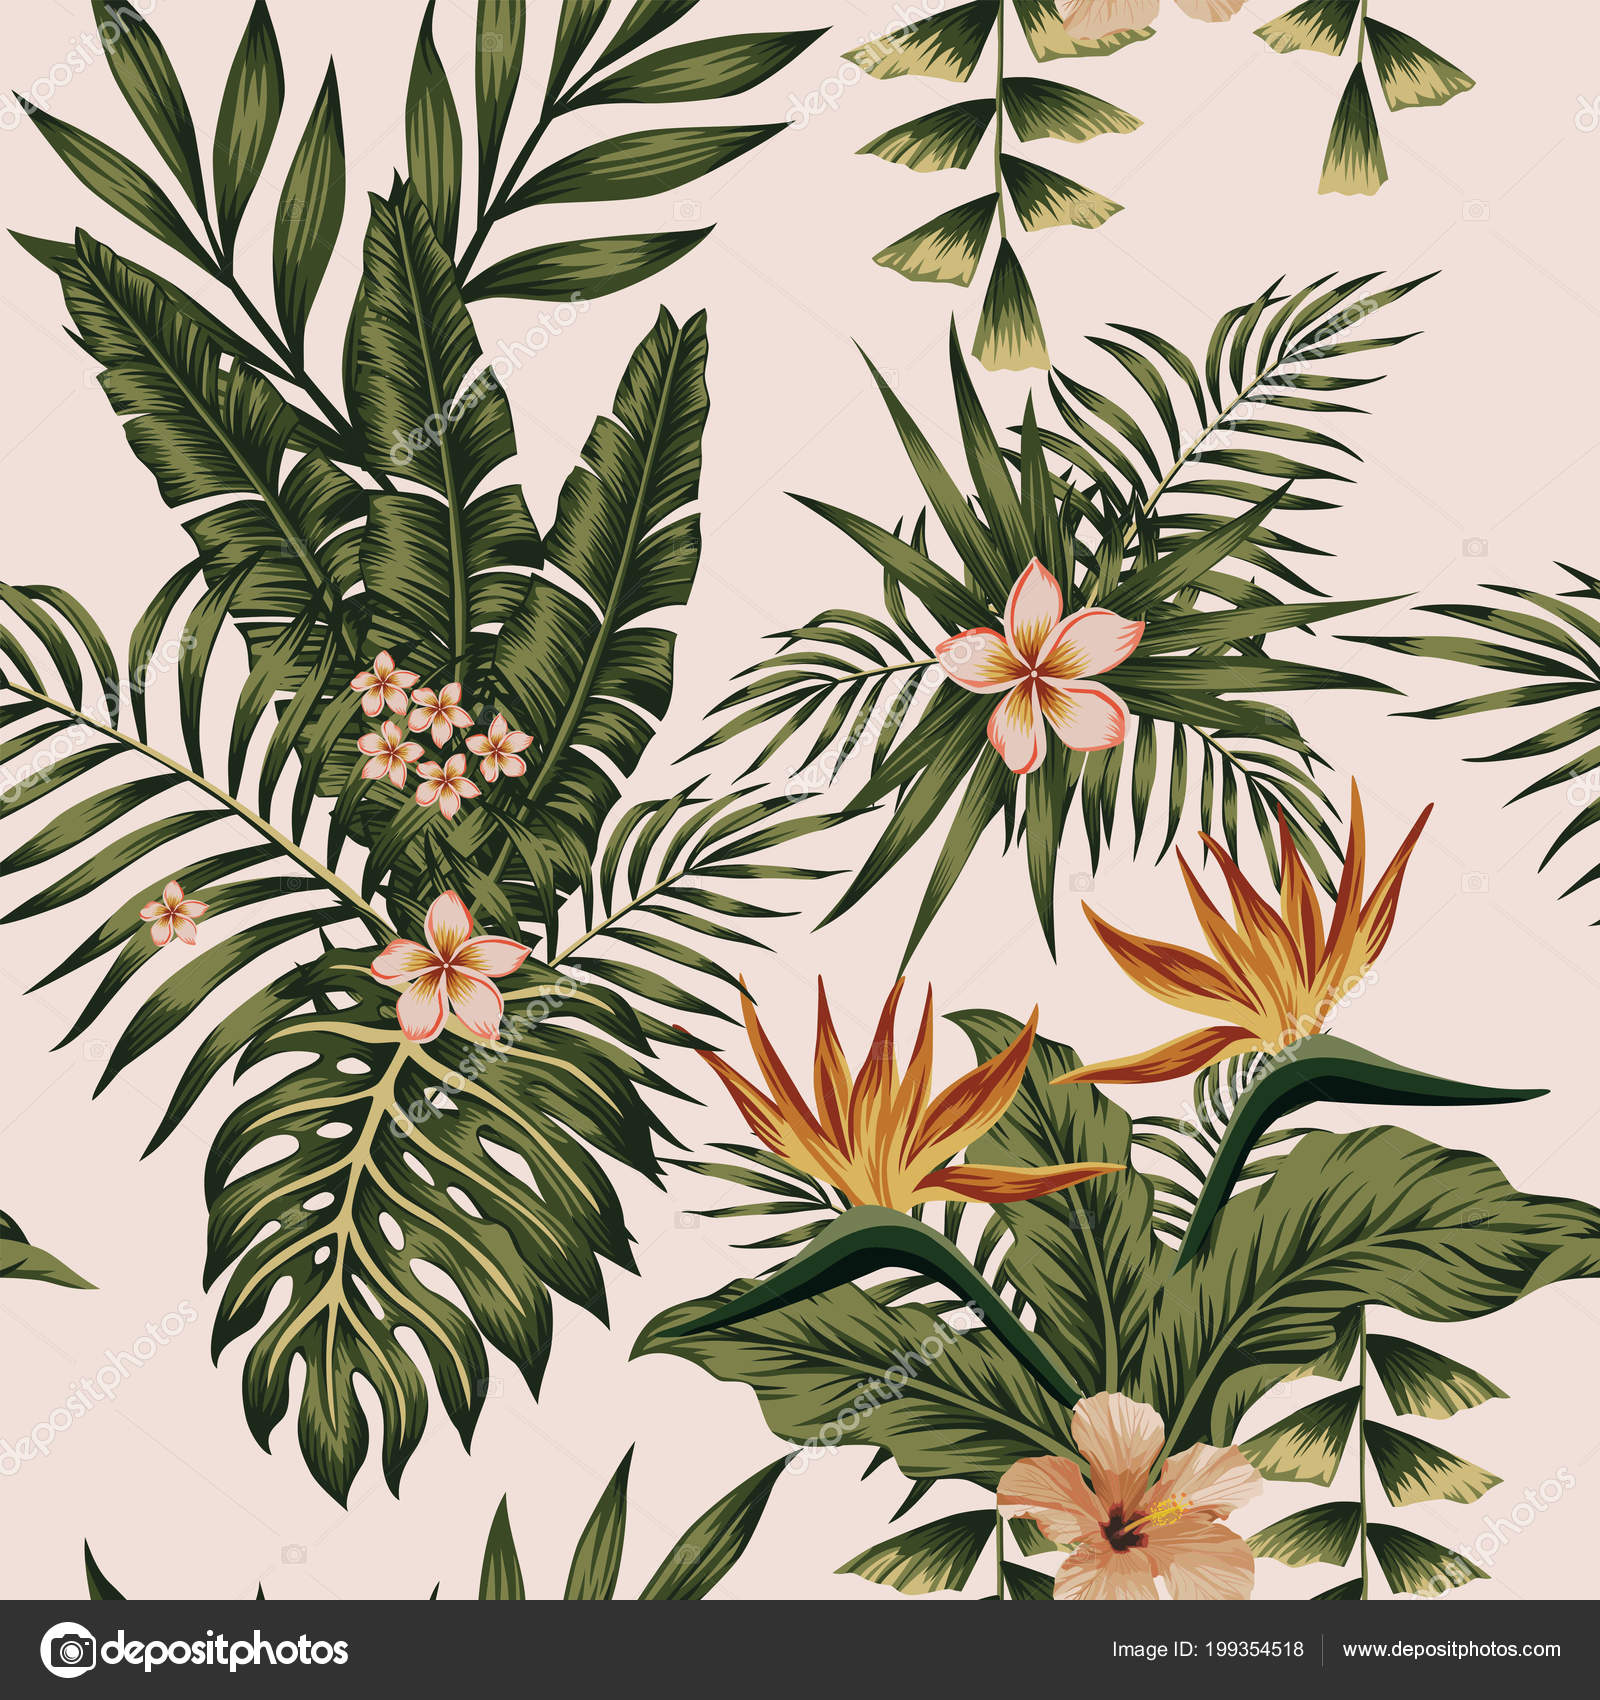 Trendy Illustration Exotic Flowers Hibiscus Plumeria Bird Paradise Plants Banana